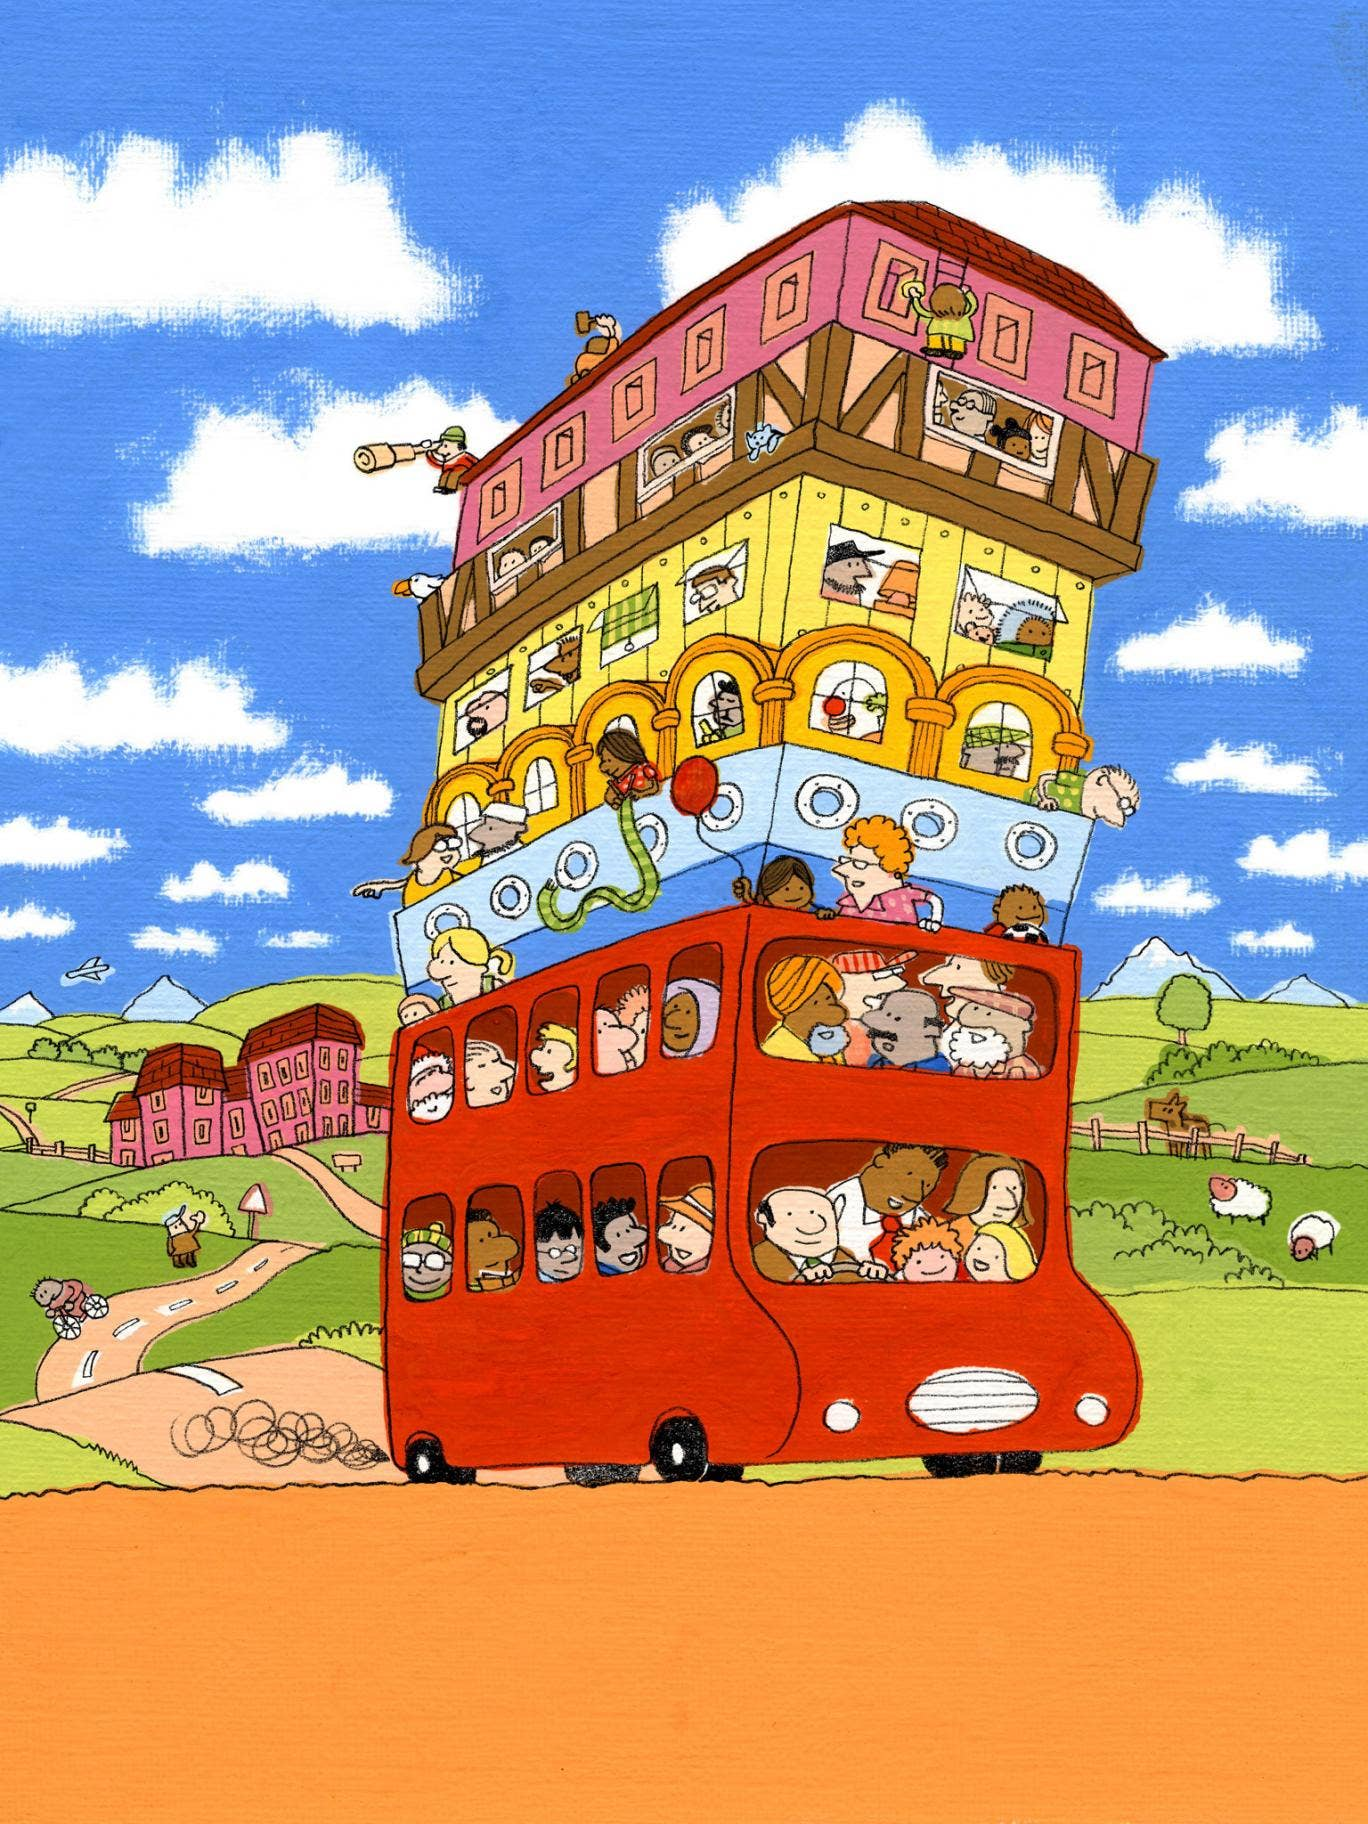 Big days out: The Hundred Decker Bus